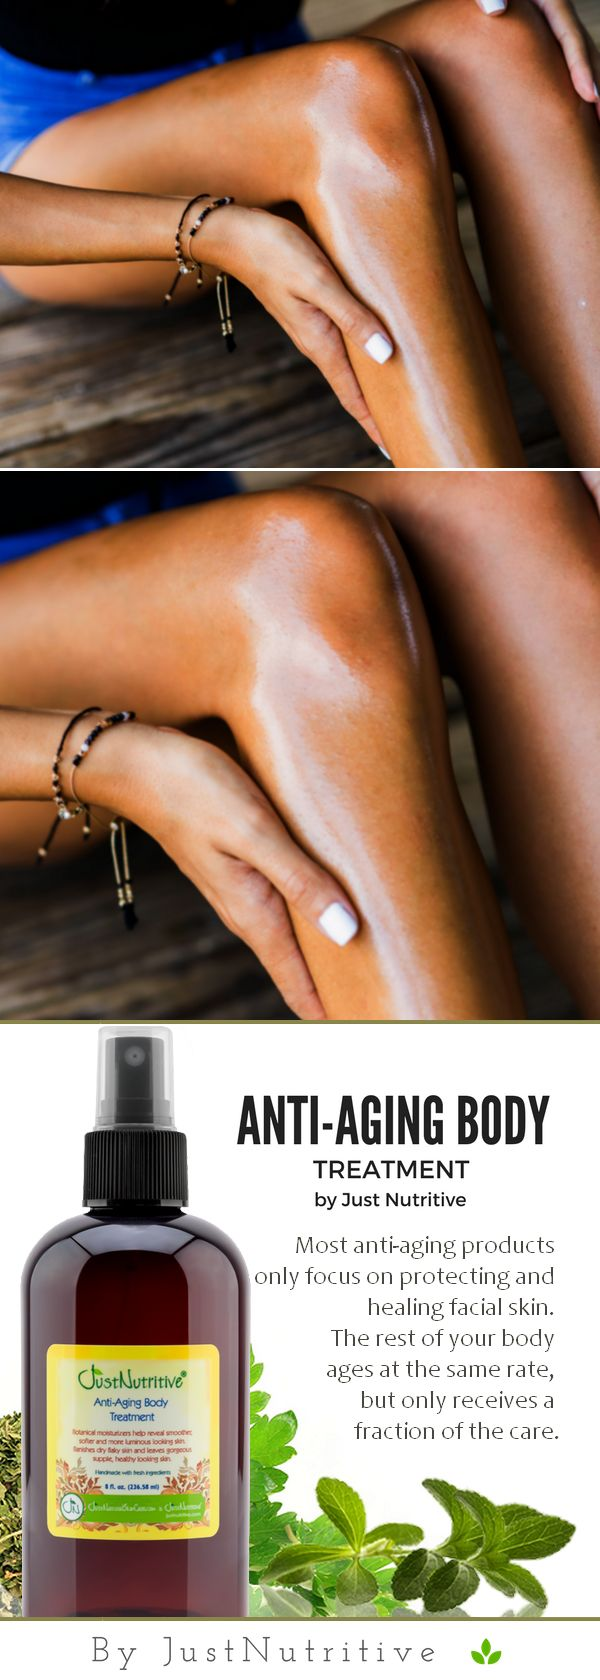 Imagine easily improving the look and feel of your skin each day by simply applying the Anti-Aging Body Treatment